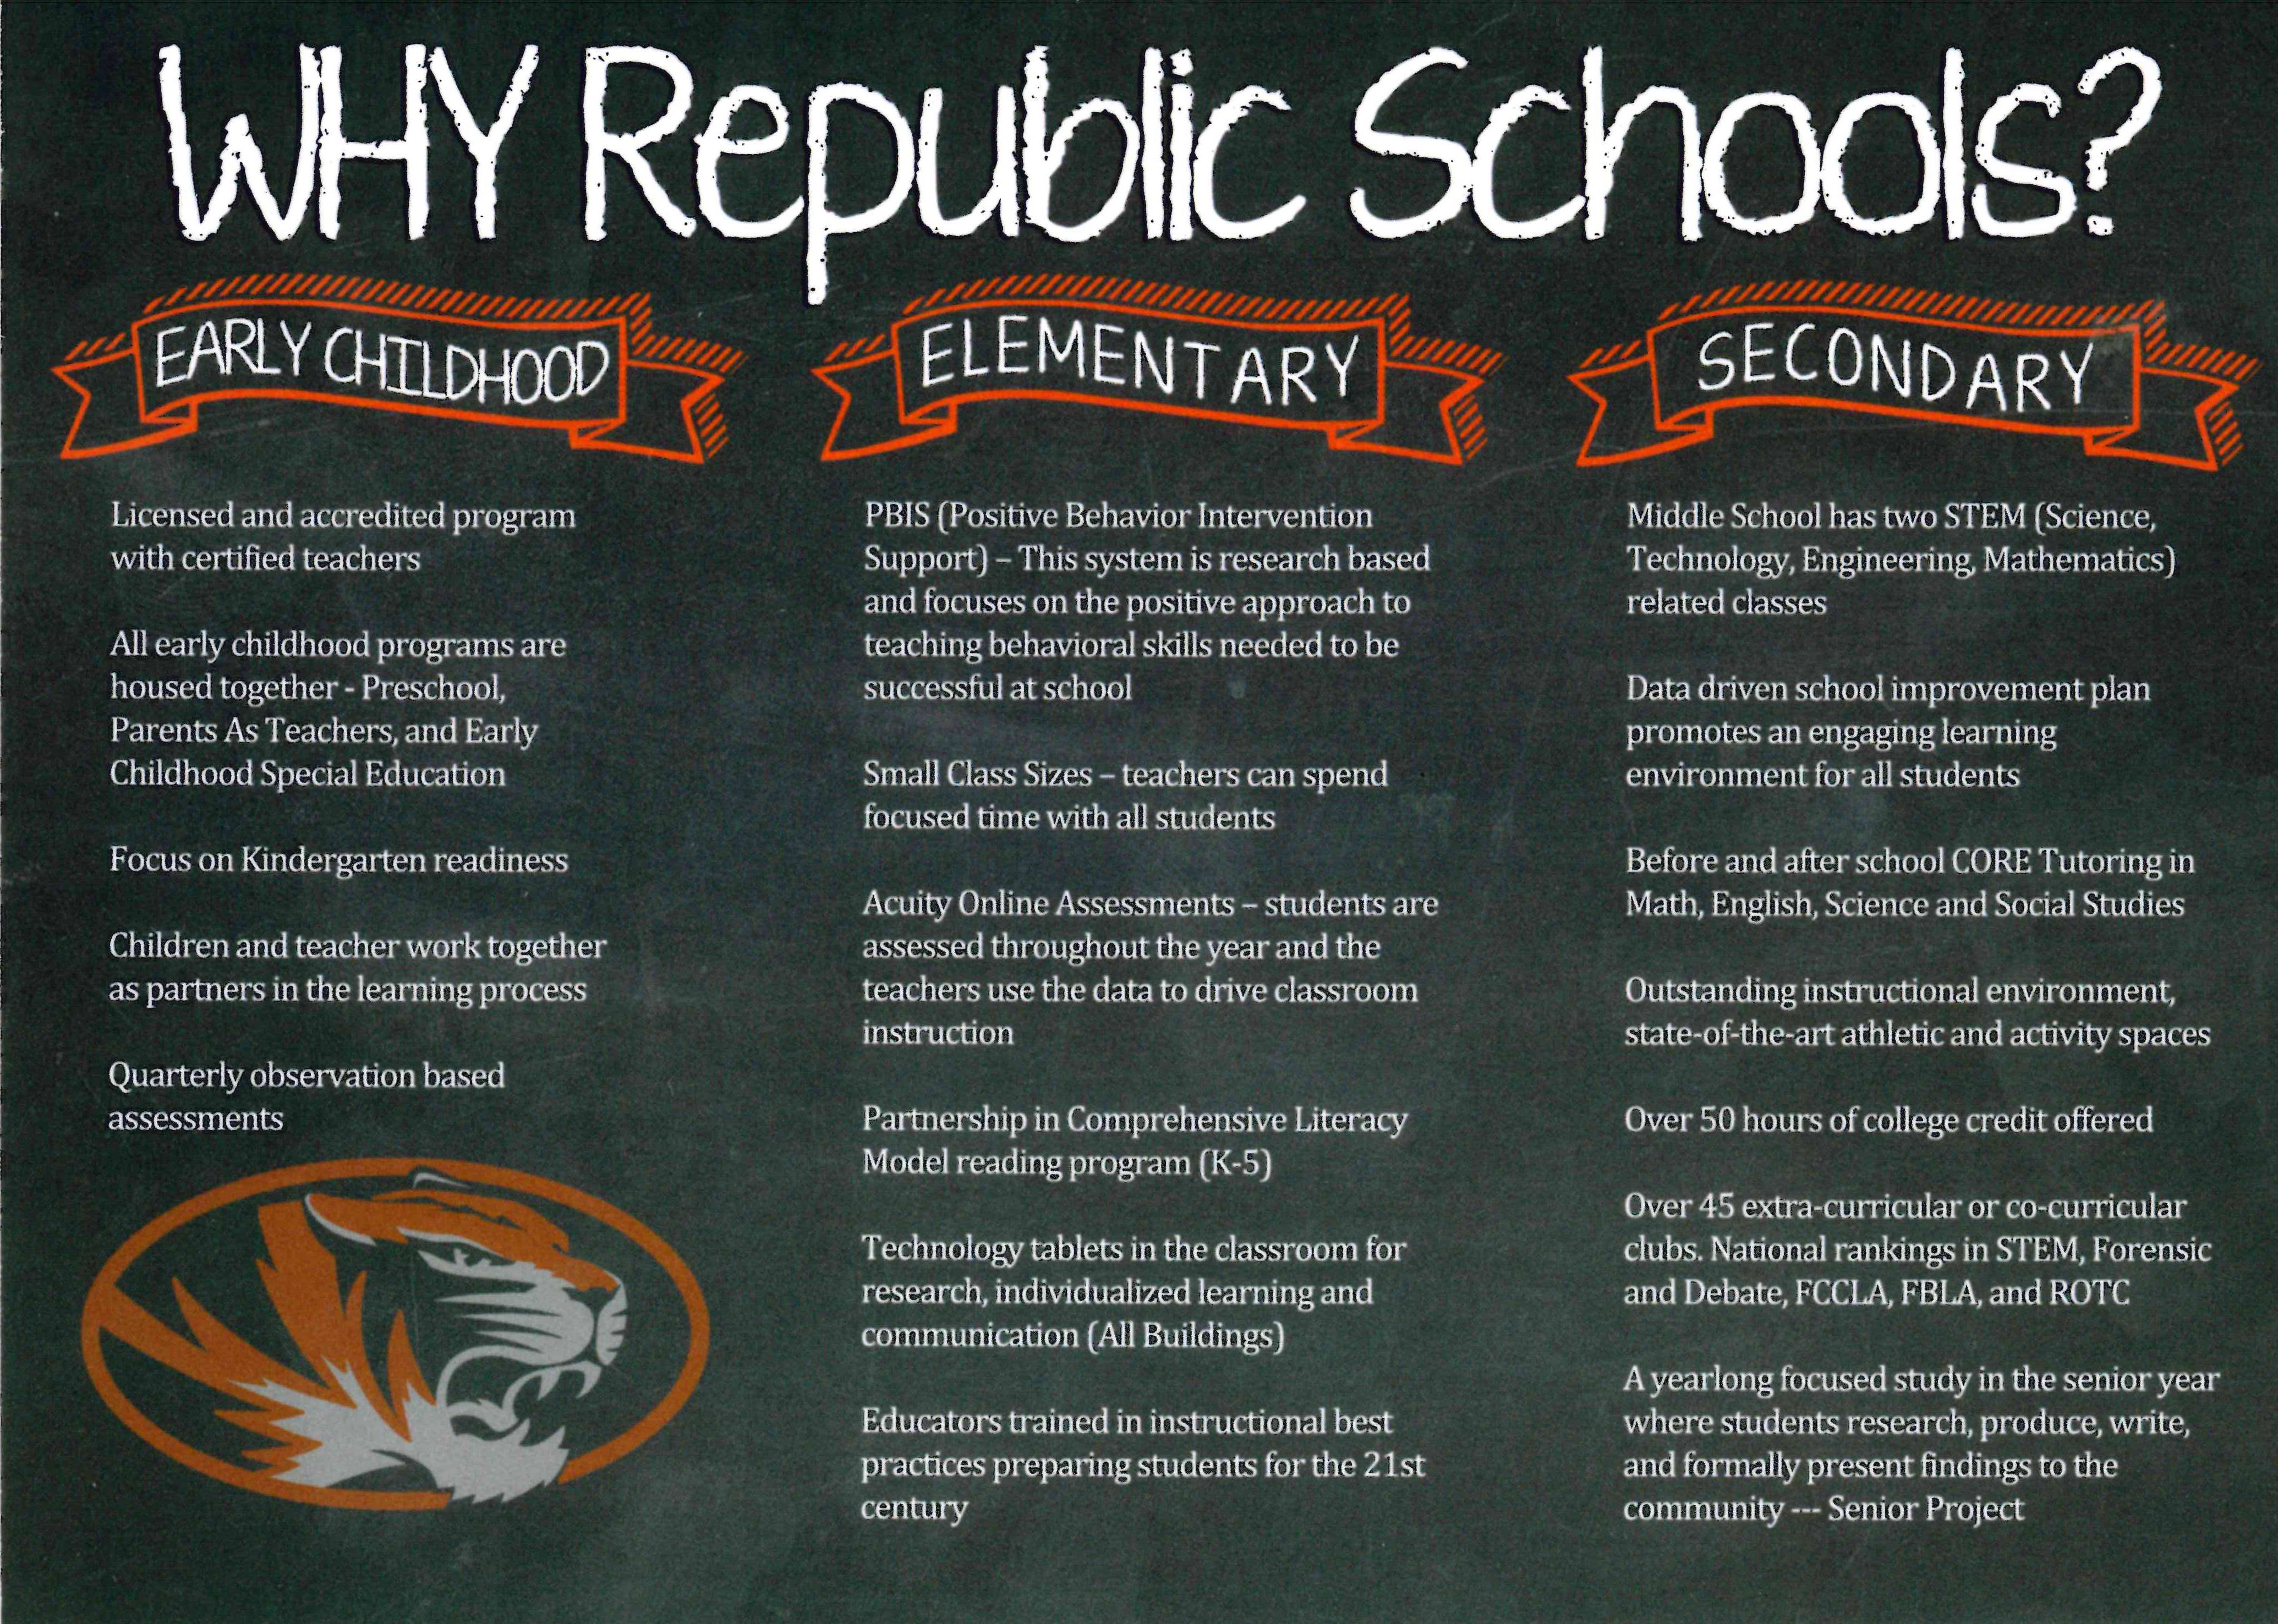 Why Republic Schools?